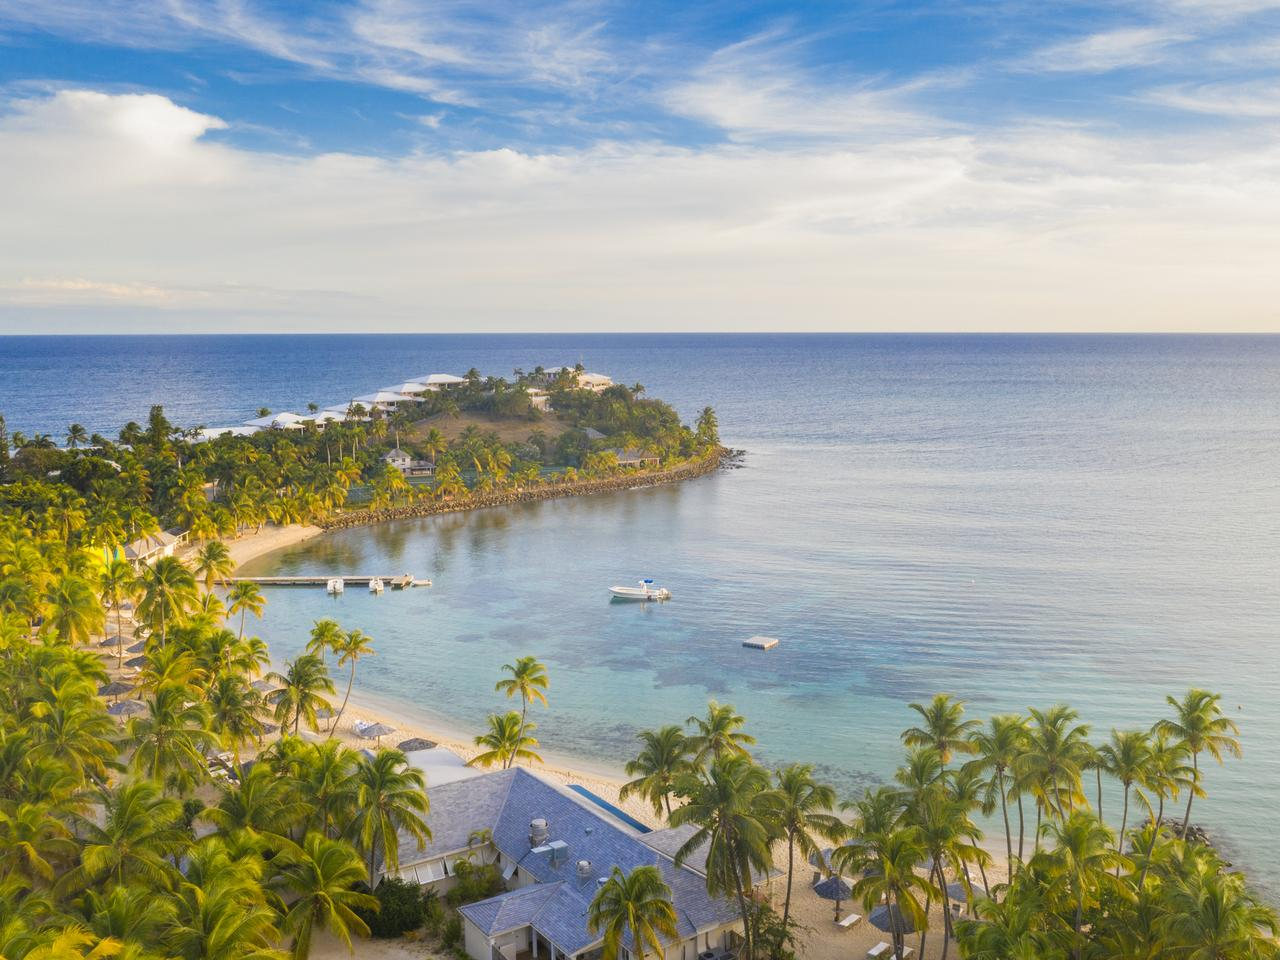 Aerial view of palm-fringed beach at Morris Bay, Old Road, Antigua, Antigua and Barbuda, Caribbean, West Indies